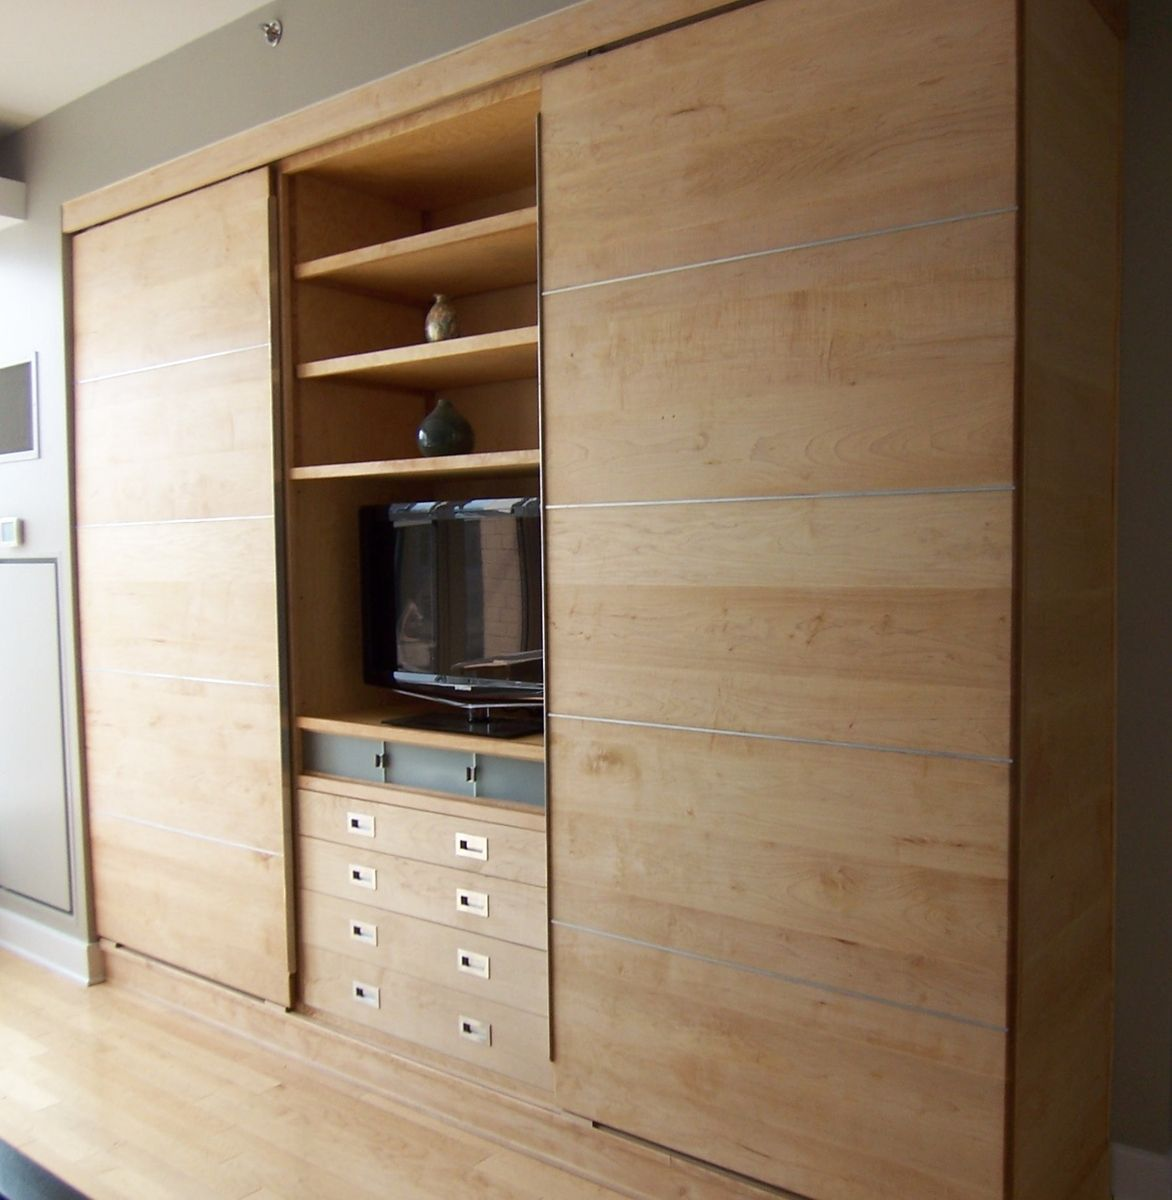 Bedroom Storage Units For Walls modern wall unit of maple | products i love | pinterest | modern